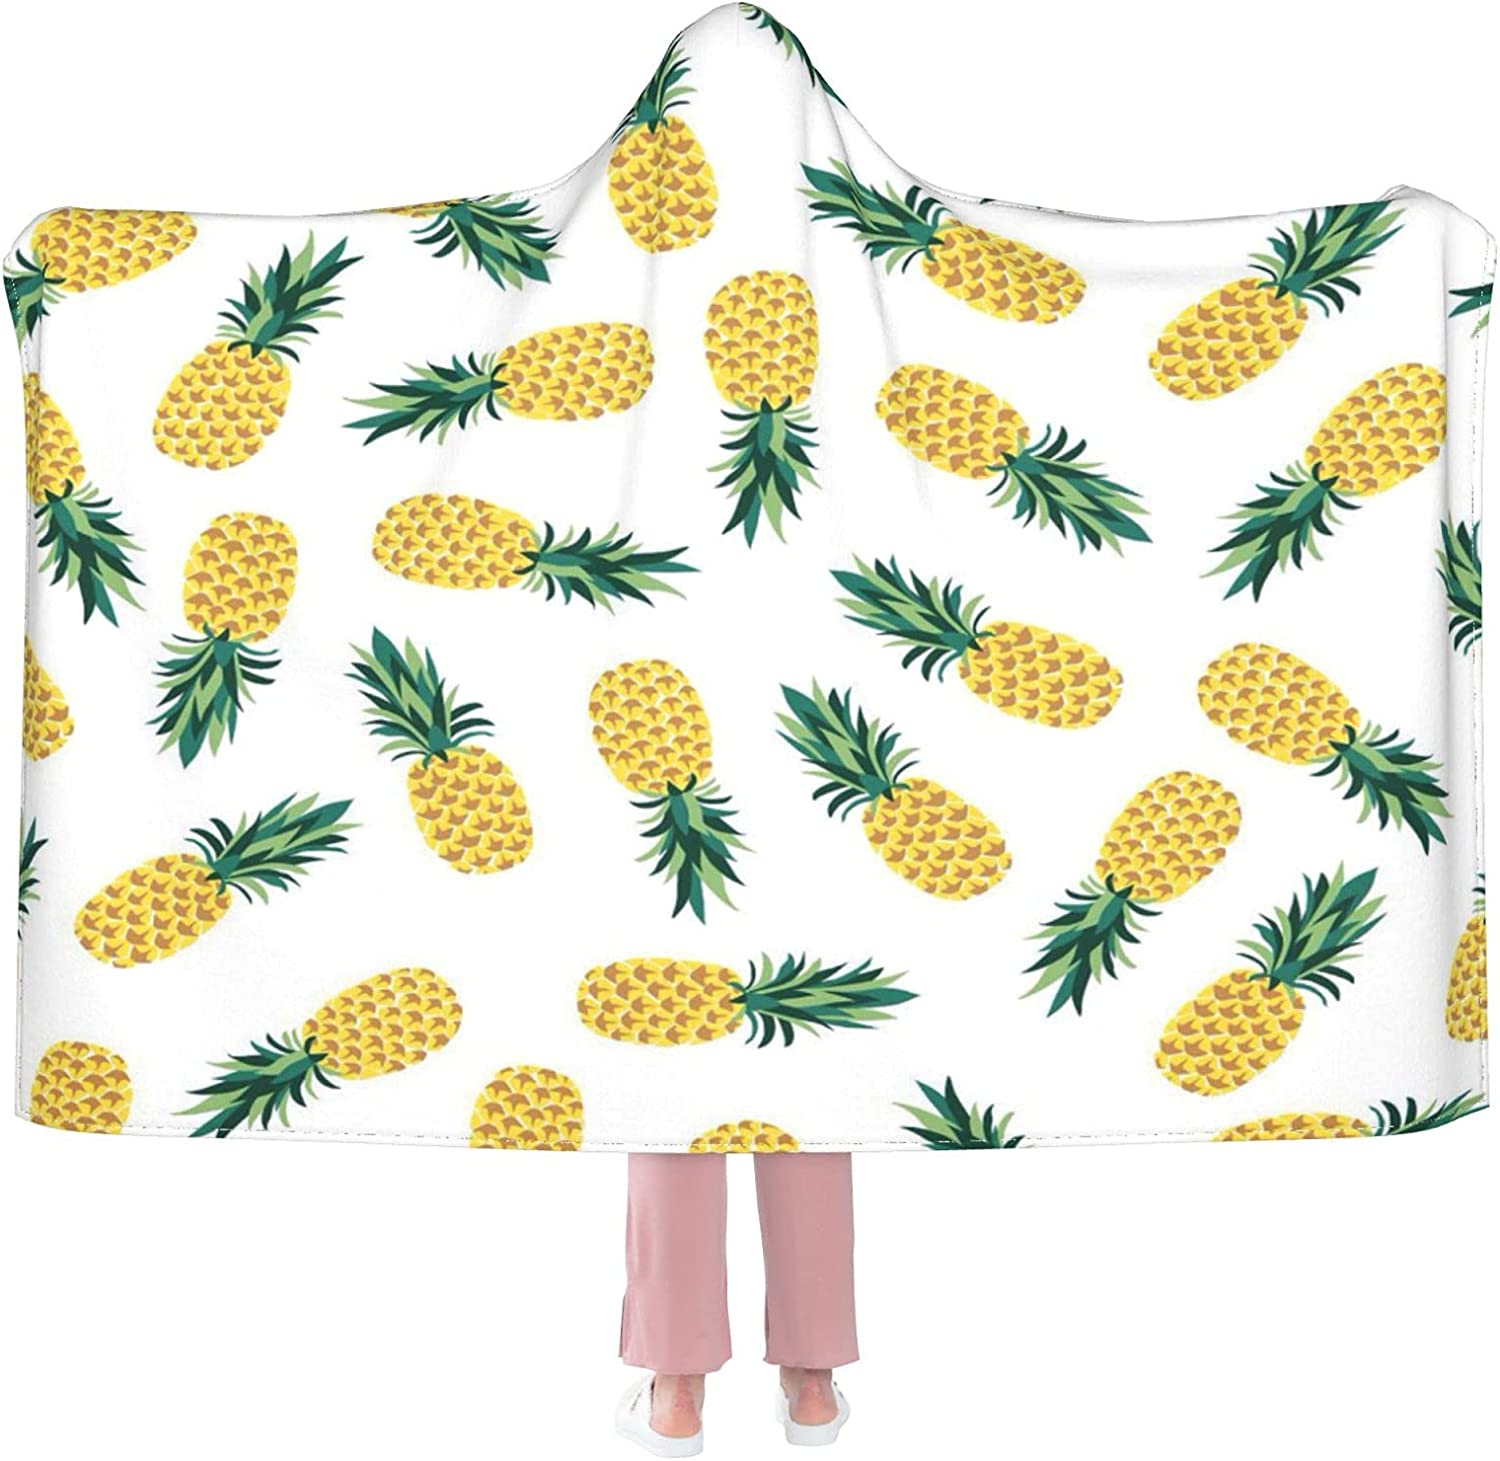 Pineapple Surprise price Wearable Blanket Flannel Soft Direct sale of manufacturer Hooded